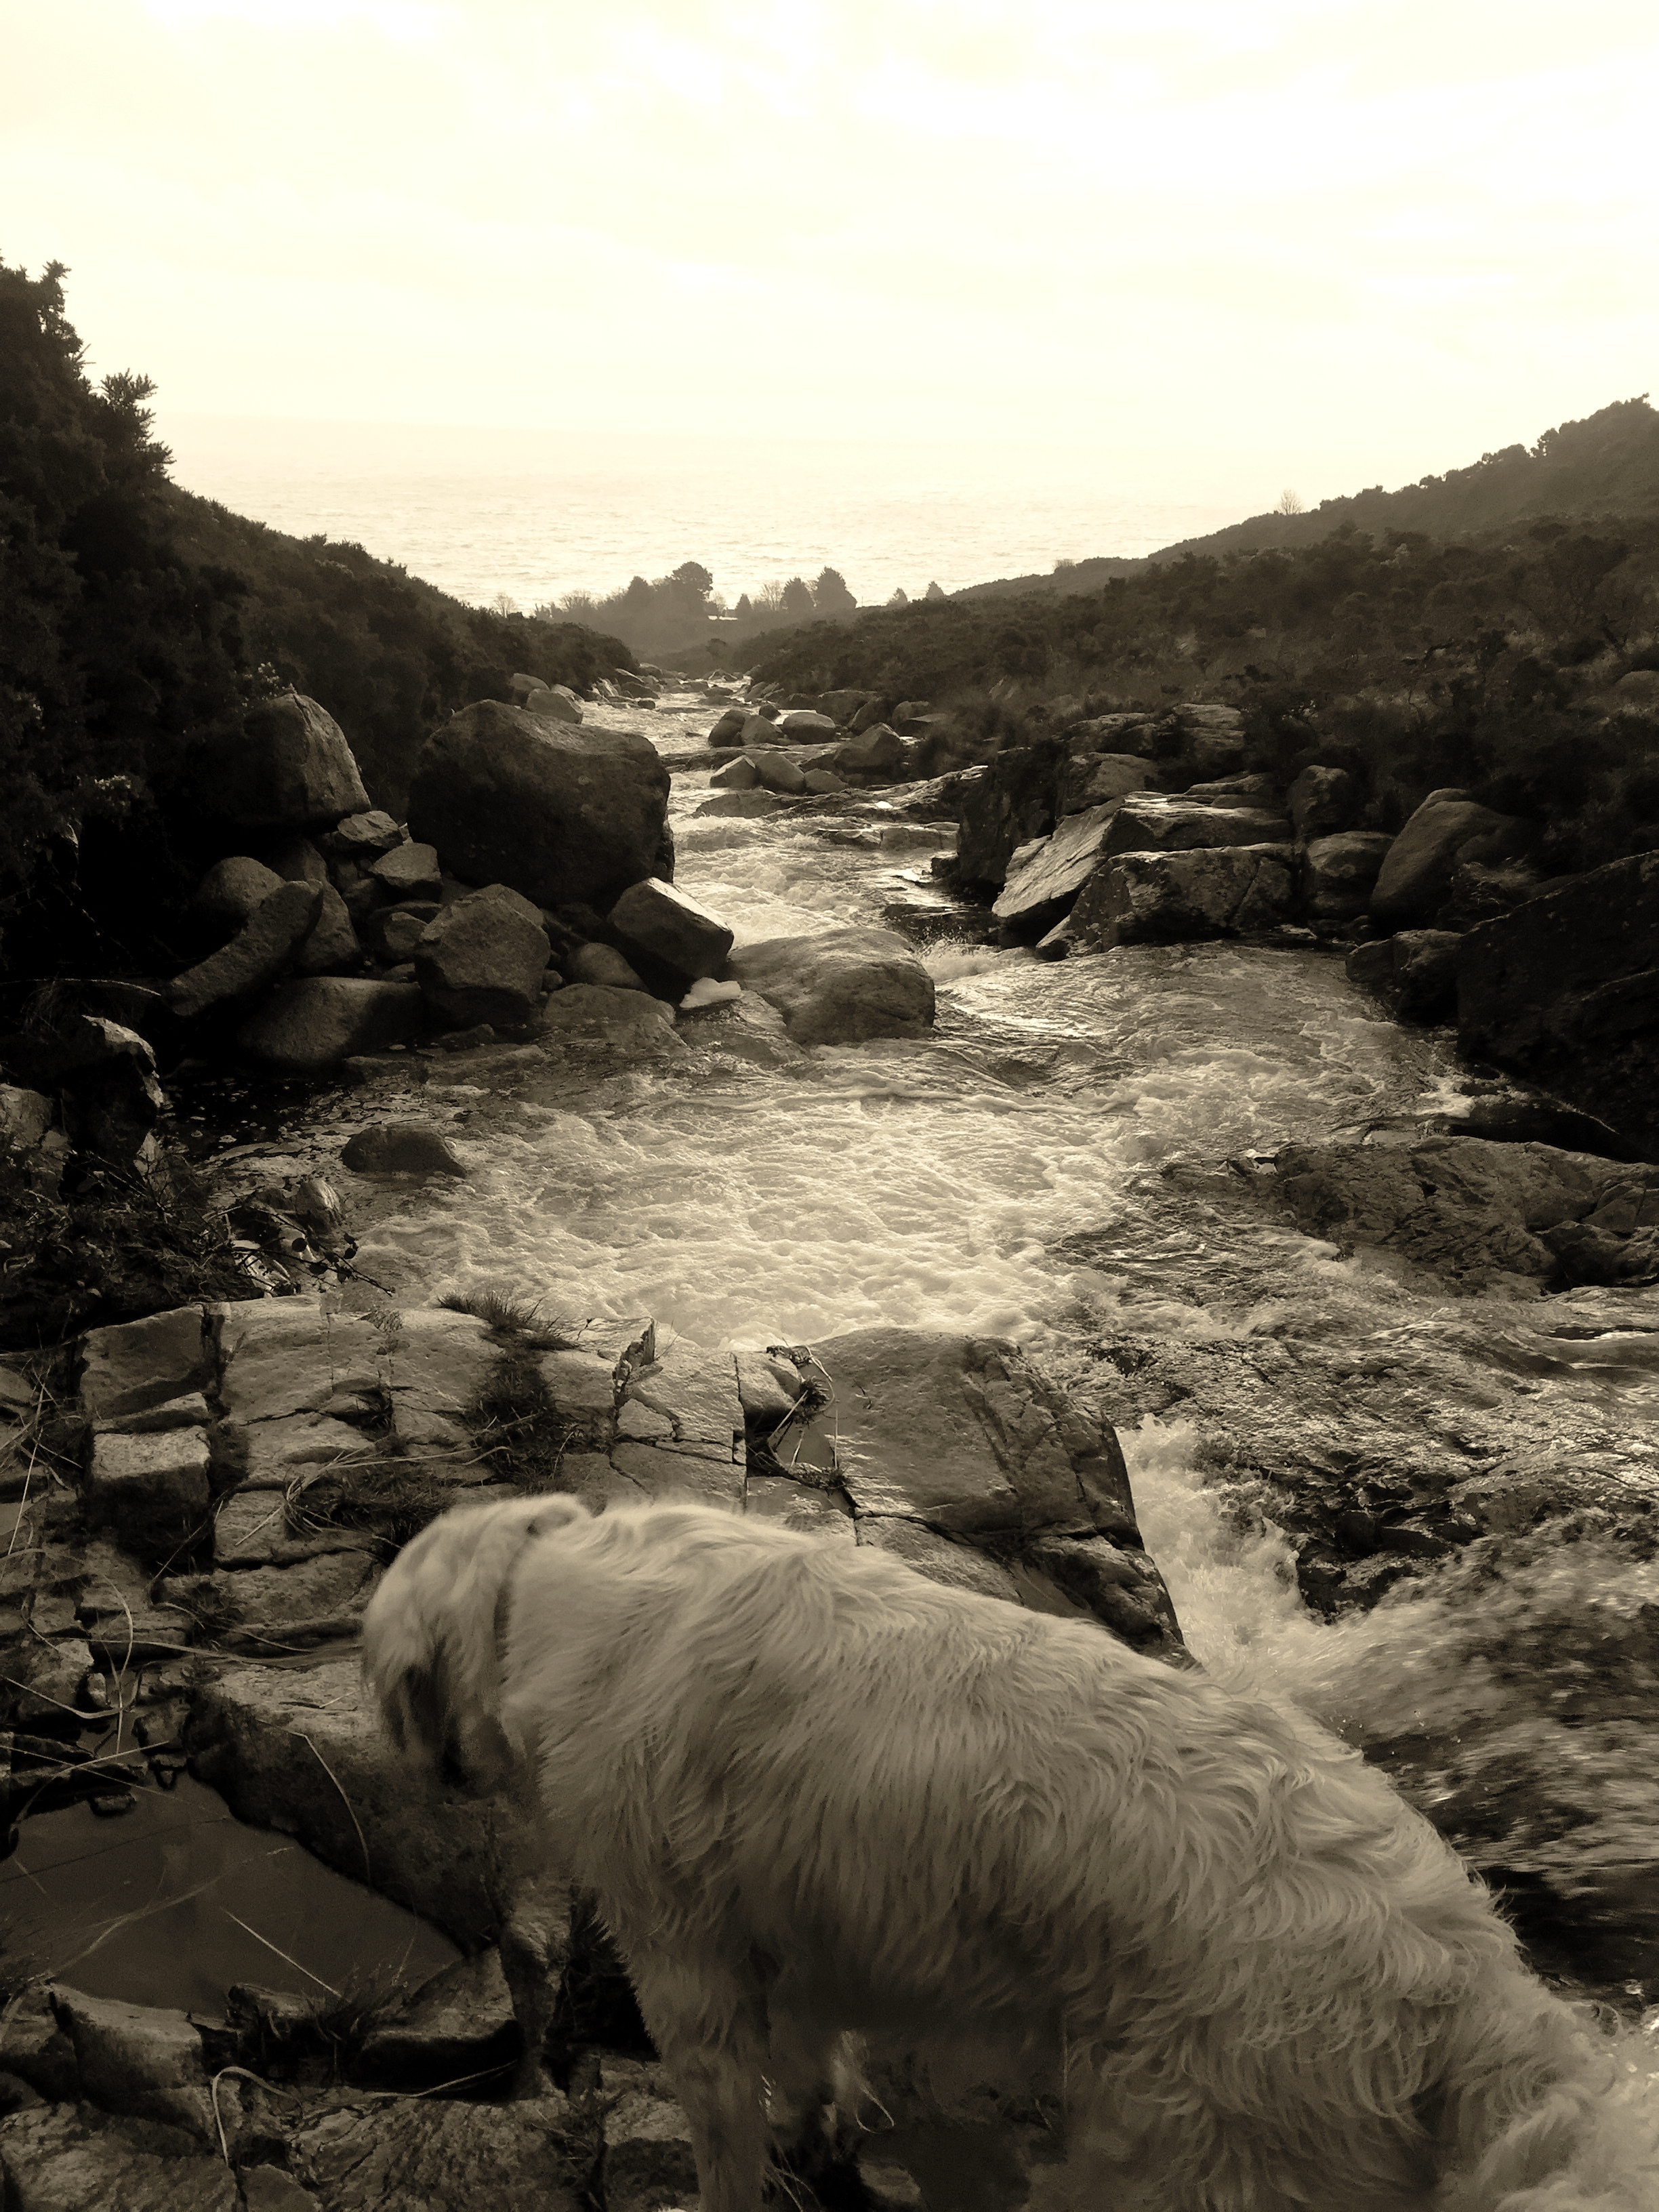 dog_river_bw_slieve_donard_newcastle_tollymore_mourne_mountains_ni_explorer_niexplorer_northern_ireland_blog.jpg